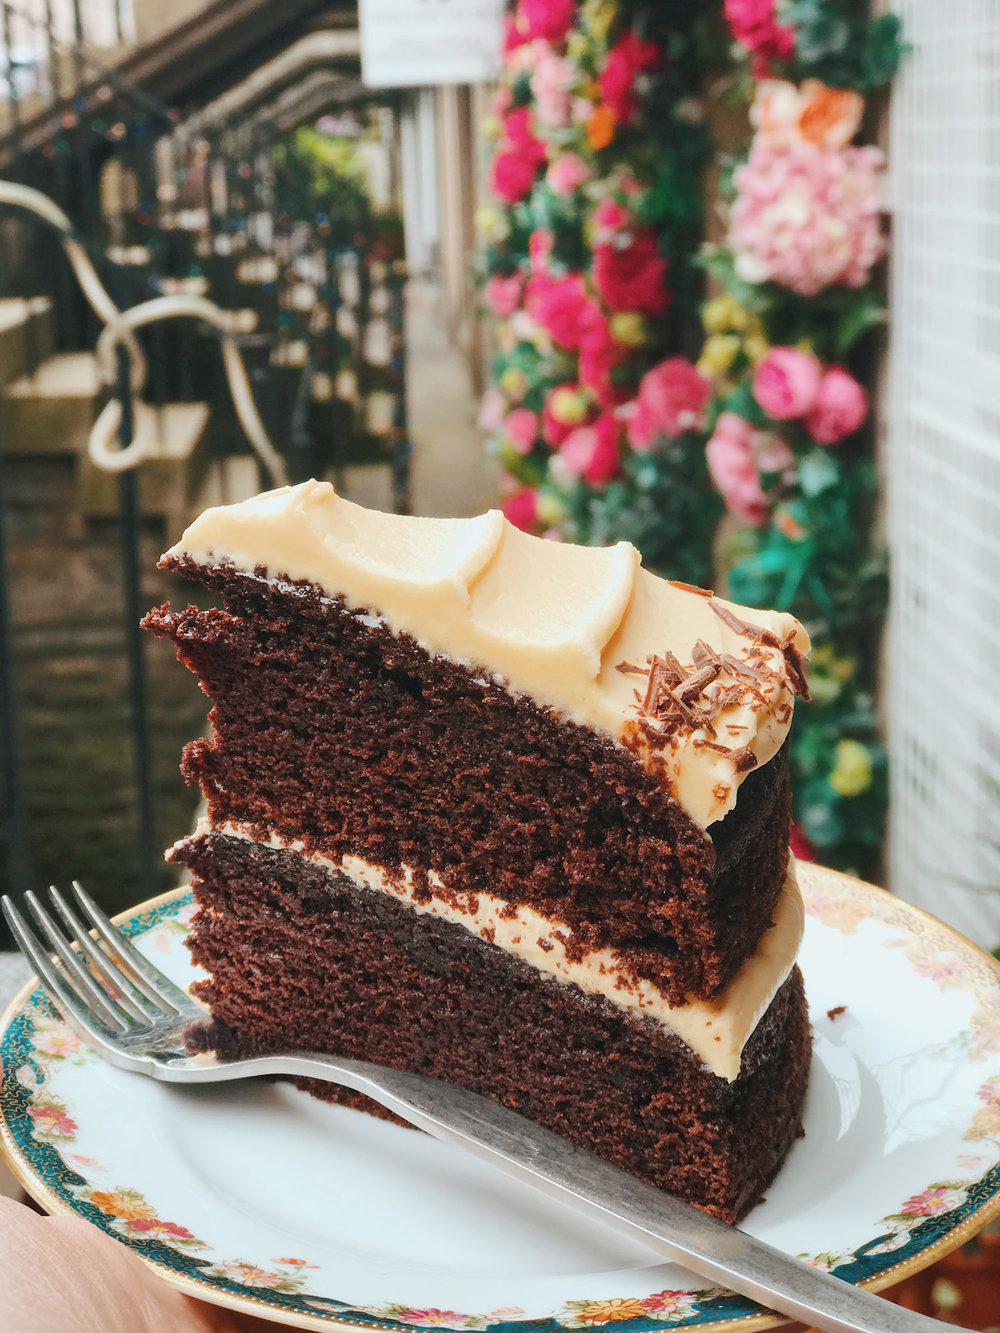 Off the scale chocolate cake at Lovecrumbs cafe, Stockbridge